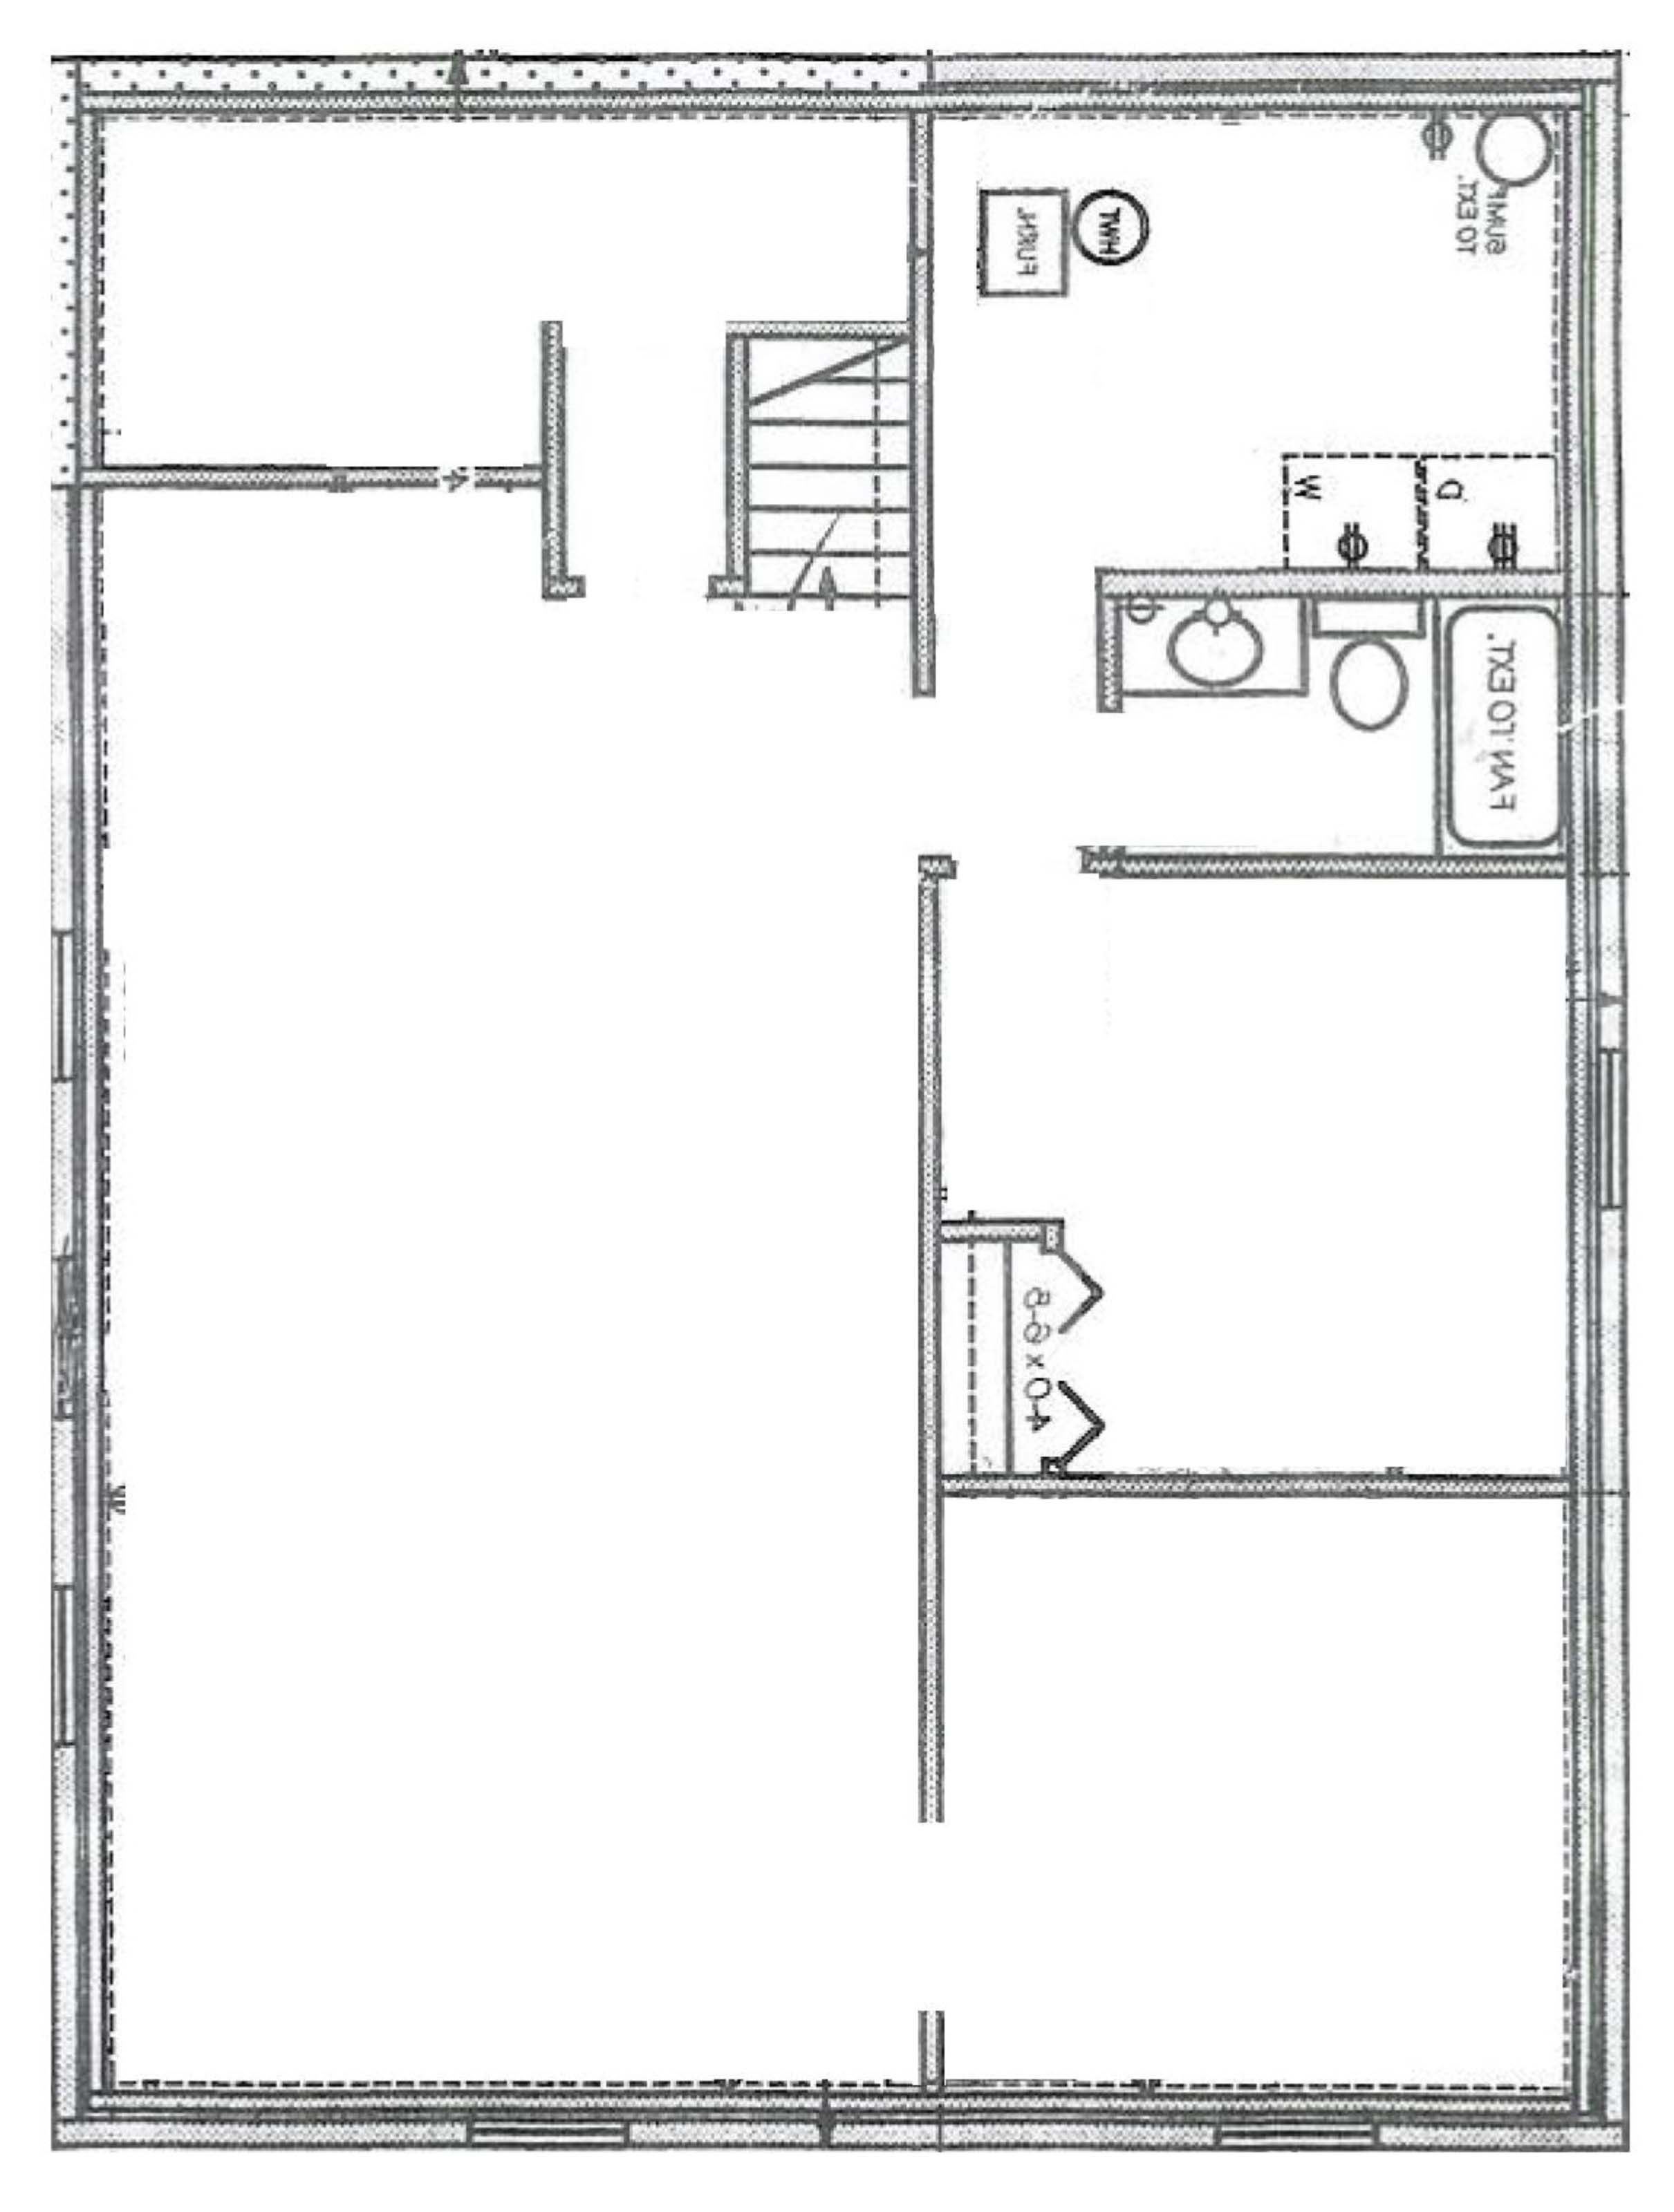 Basement Layout Basement Layout Floor Plan Layout Basement Floor Plans